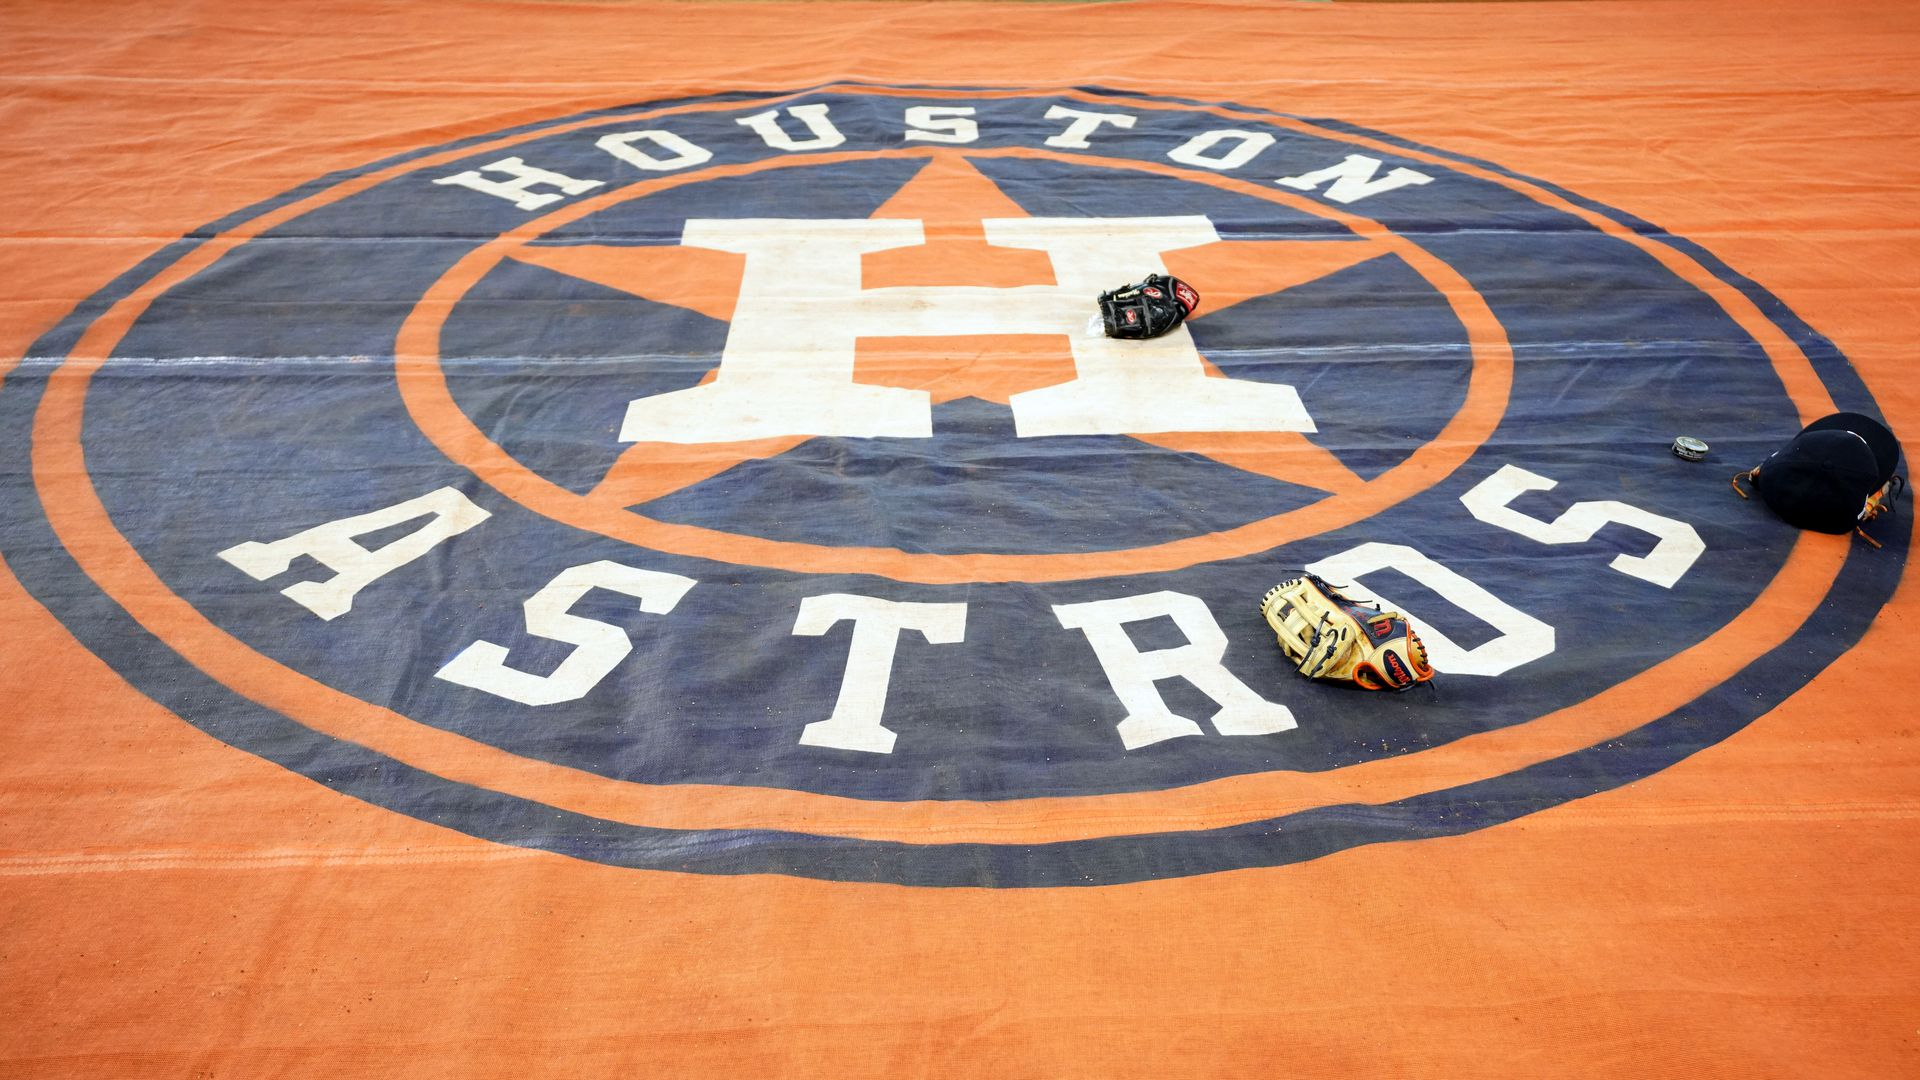 The Houston Astros' logo